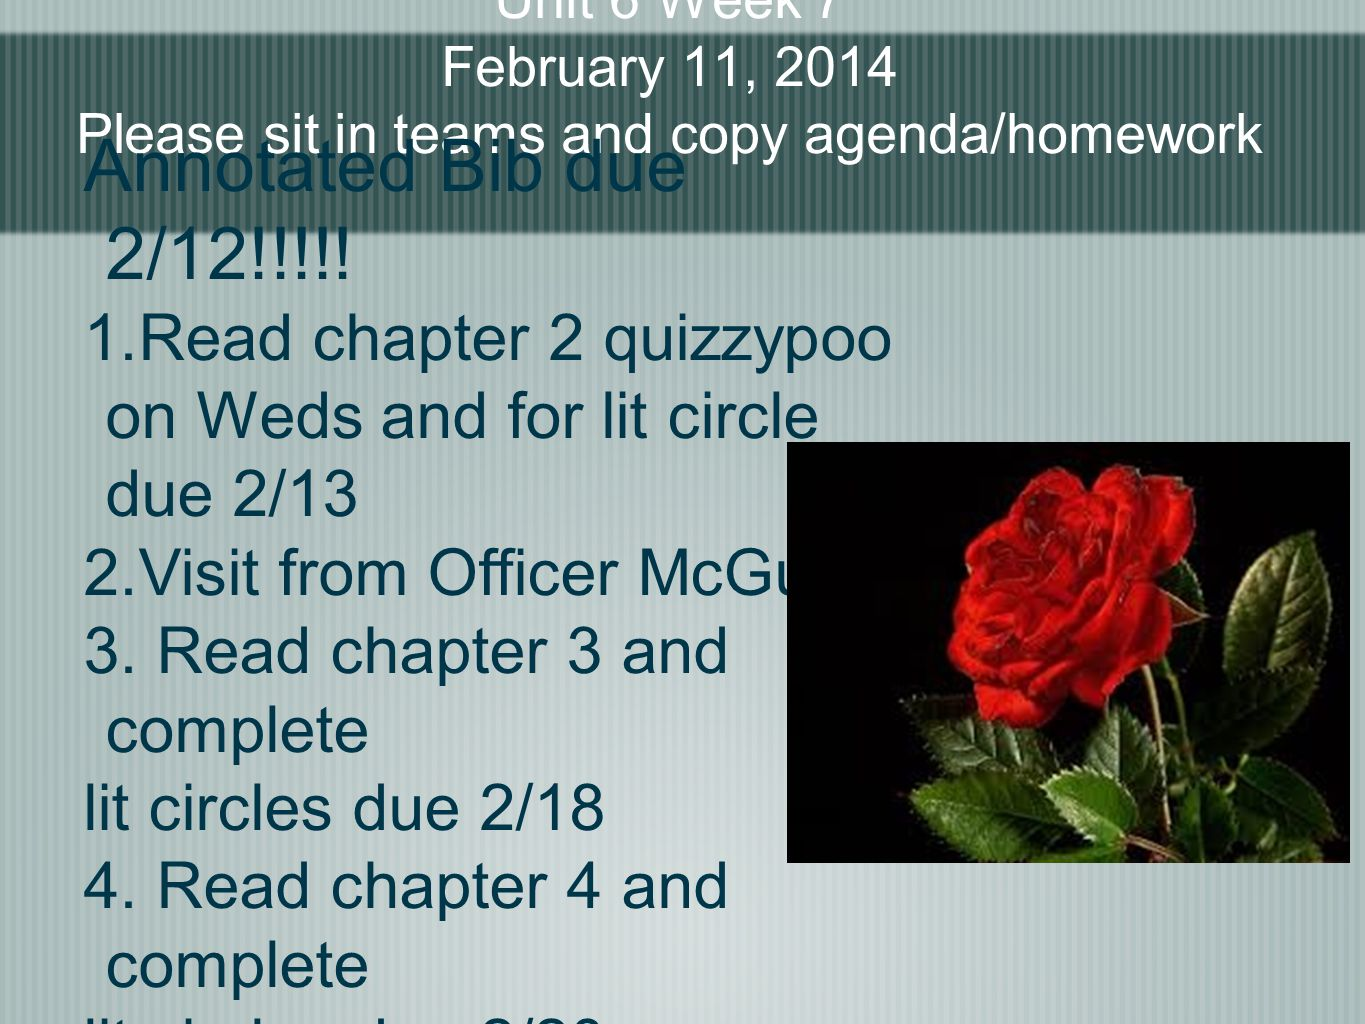 Unit 6 Week 7 February 11, 2014 Please sit in teams and copy agenda/homework Annotated Bib due 2/12!!!!! 1.Read chapter 2 quizzypoo on Weds and for li